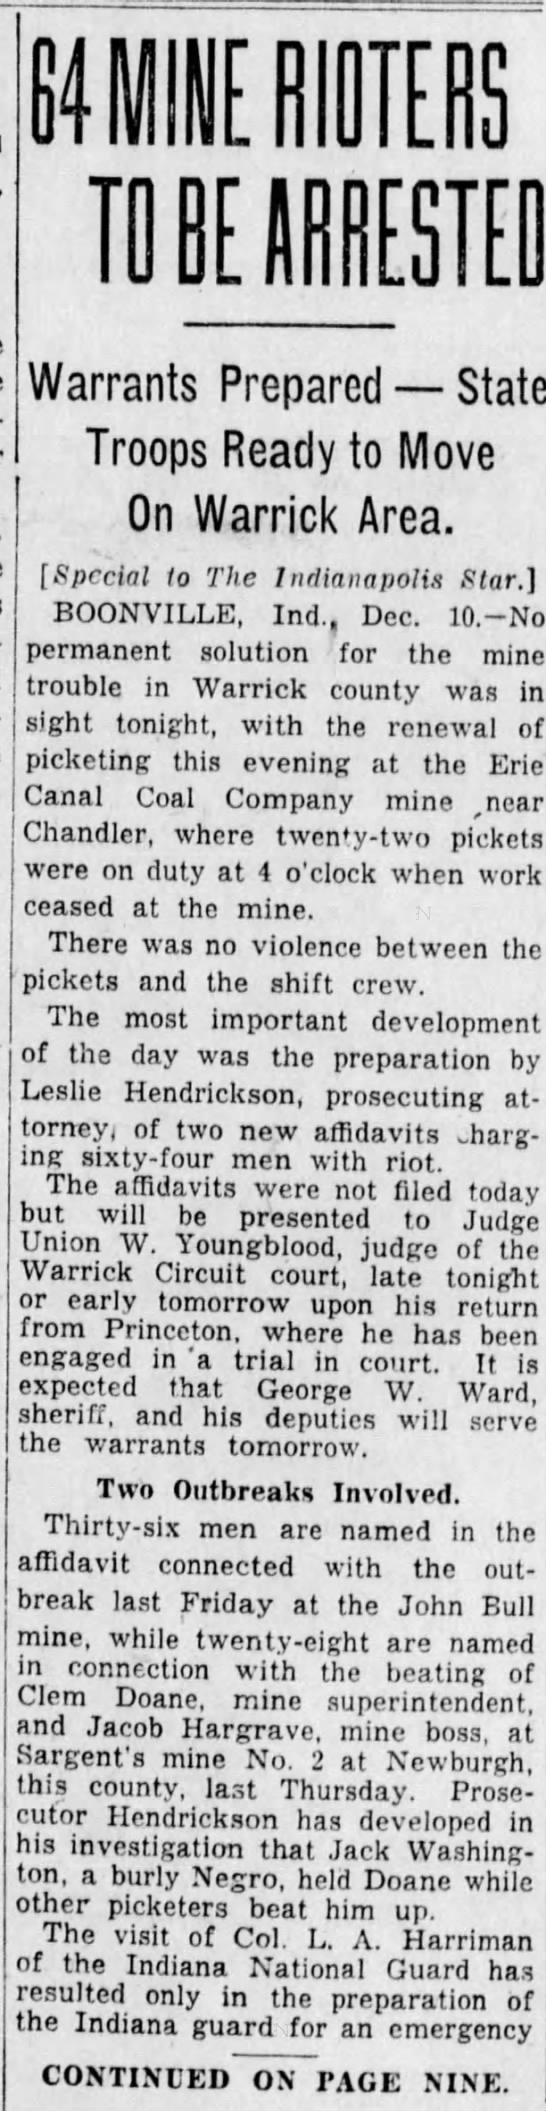 The Indianapolis Star (Indianapolis, Indiana) 11 Dec 1929, Wed Page1 - T Warrants Prepared State Troops Ready to Move...